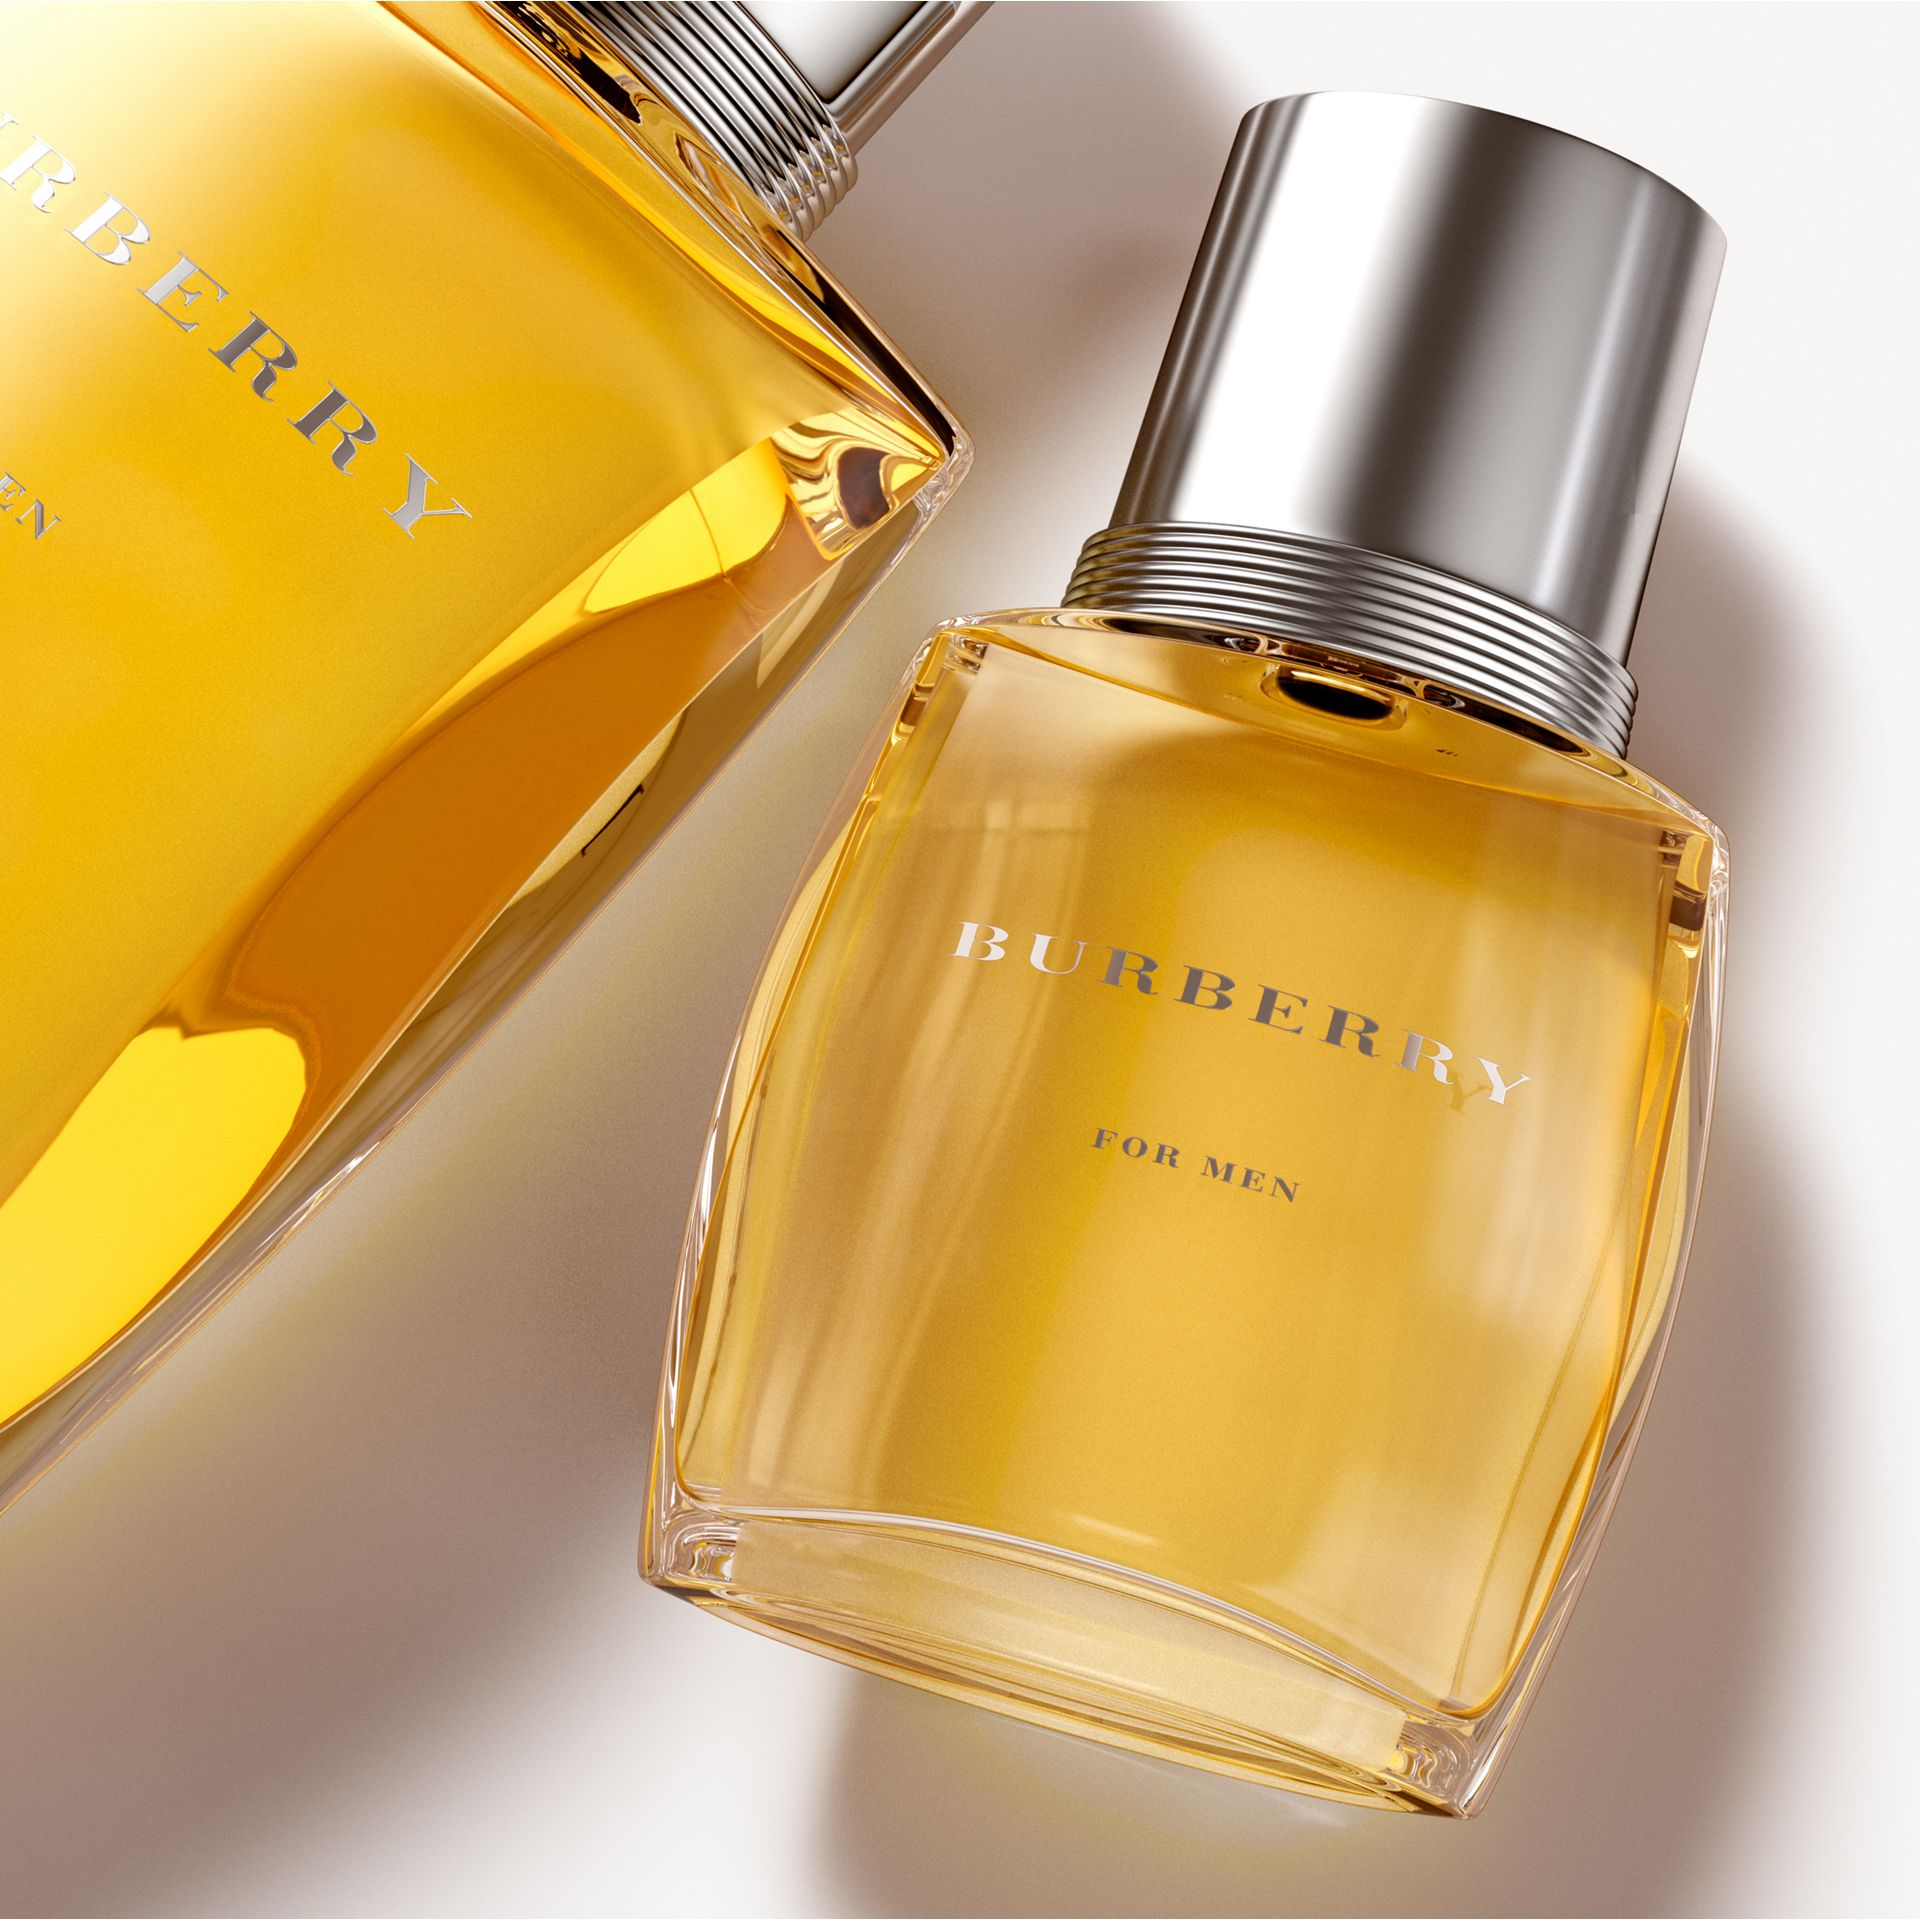 Burberry For Men Eau De Toilette 30ml - Men | Burberry - gallery image 2